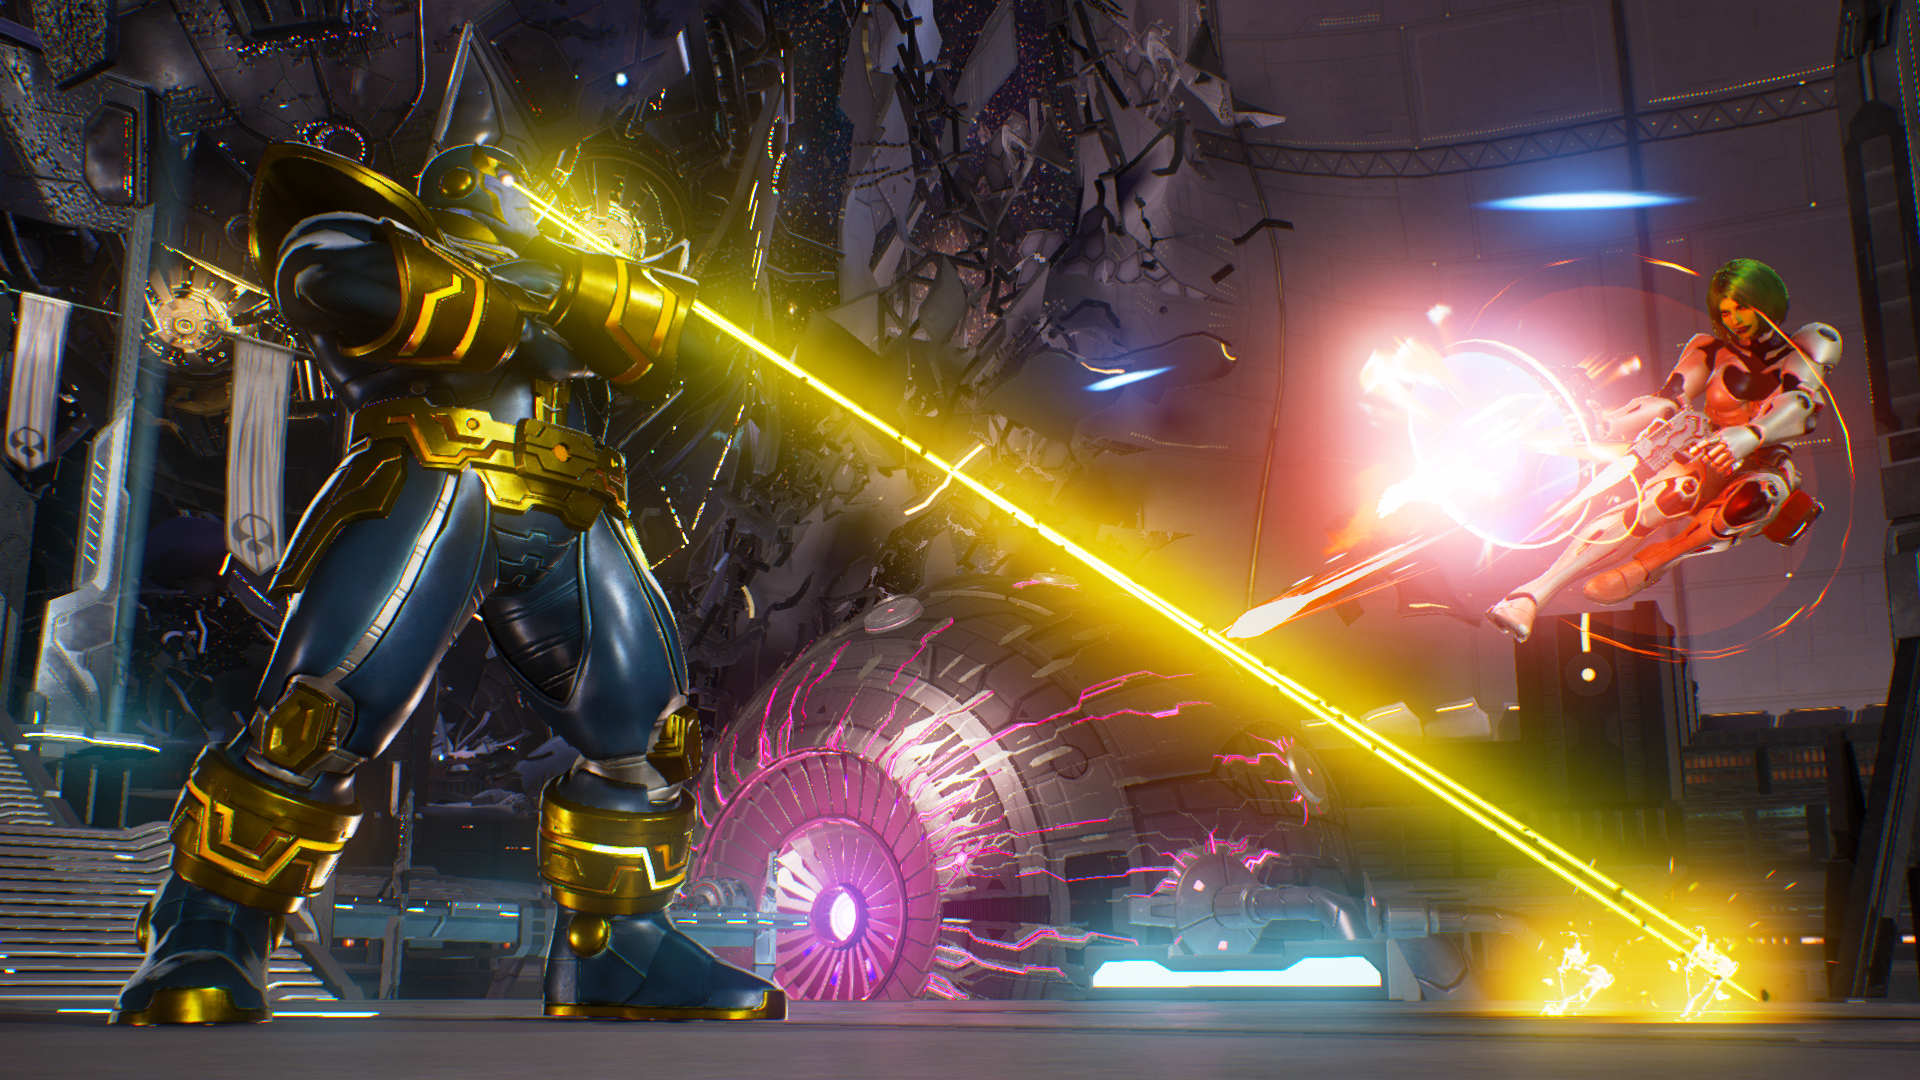 Marvel Vs Capcom Infinite Seems To Be Bombing In Sales Gamewatcher